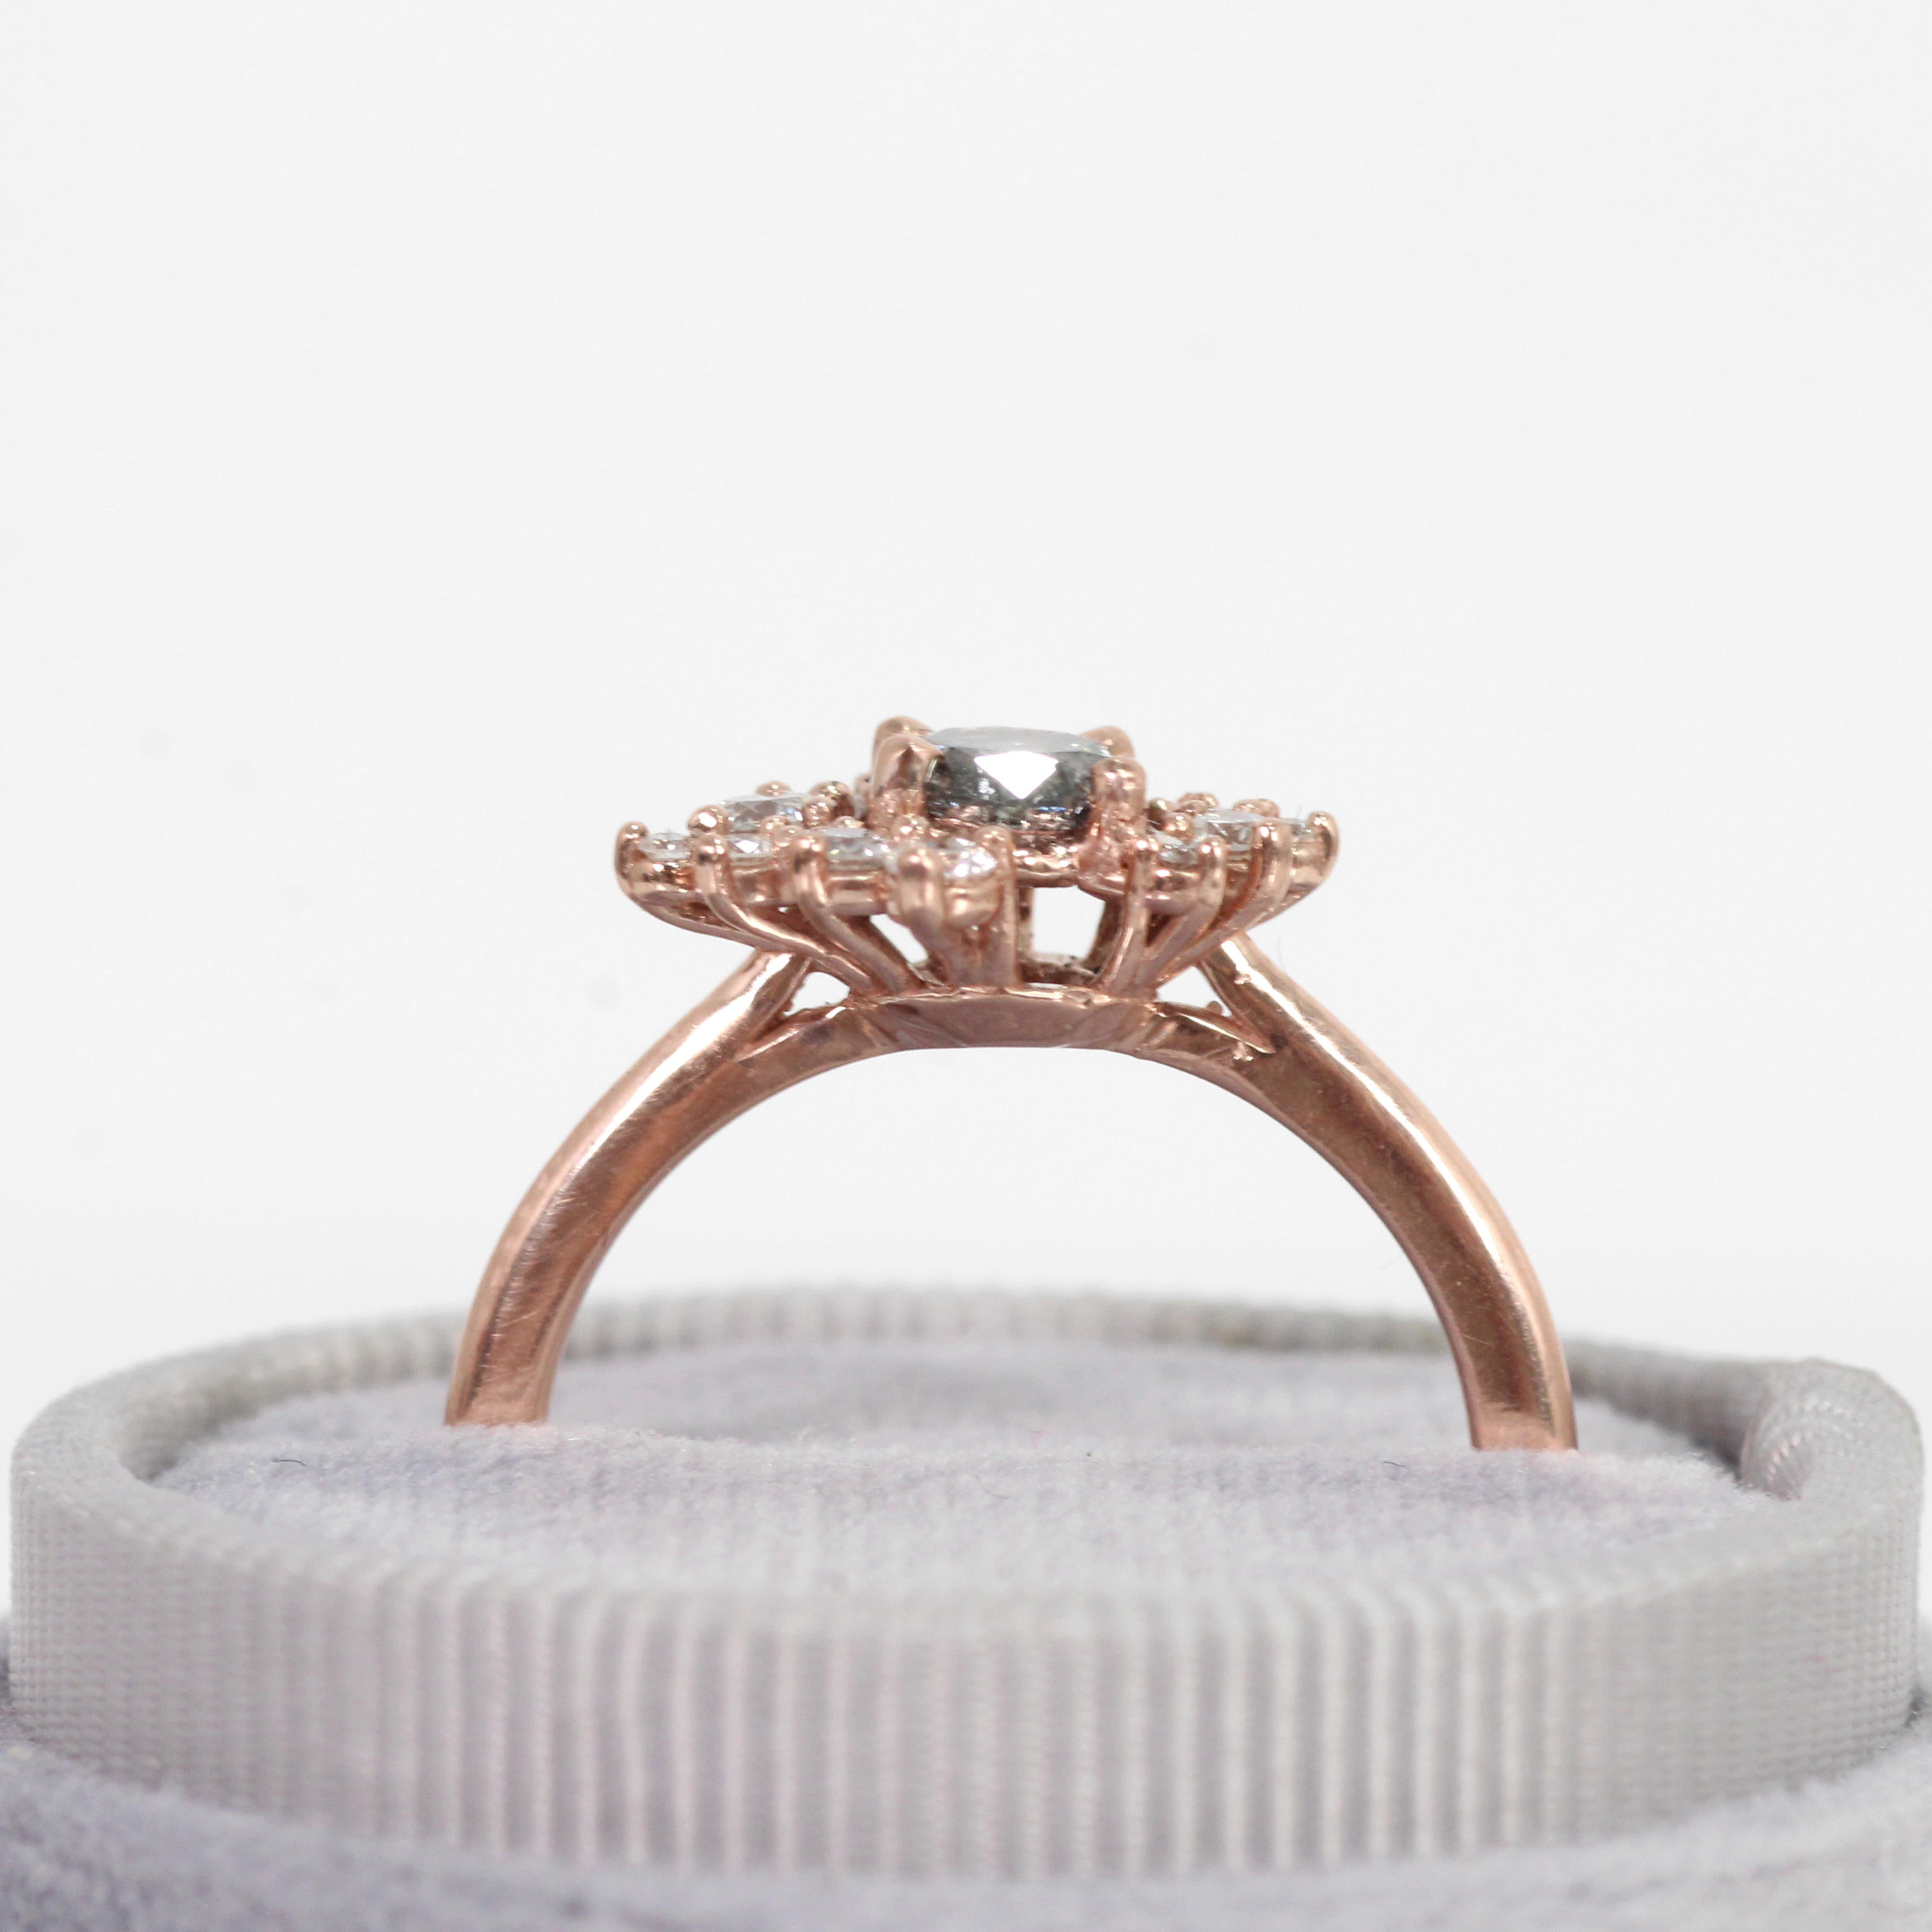 Orion Ring with Celestial Diamond in 10k Rose Gold - Ready to Size and Ship